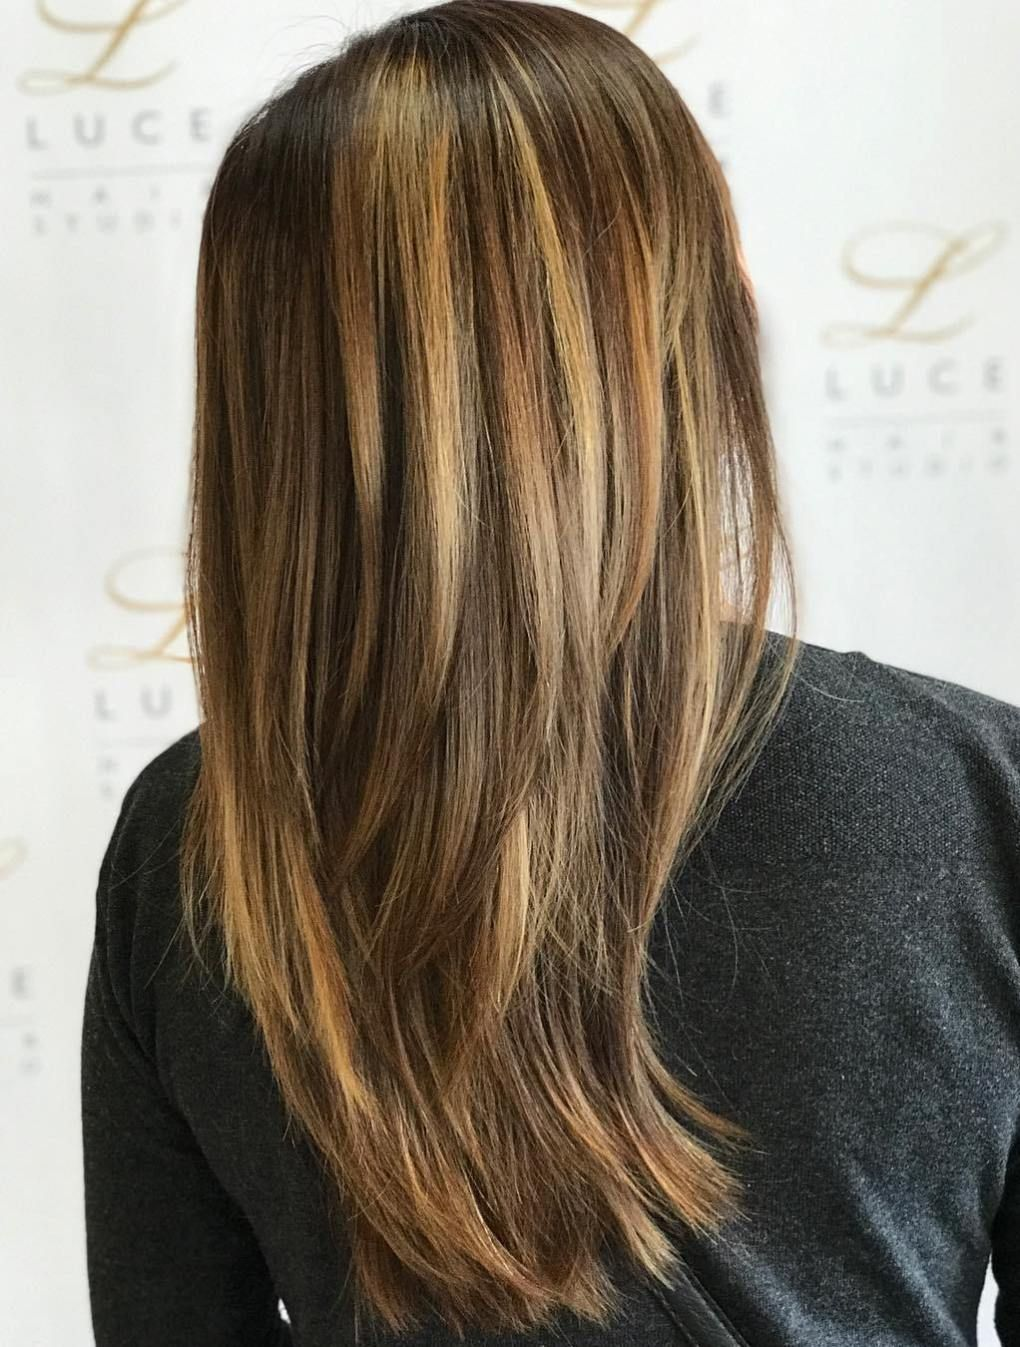 40 Picture Perfect Hairstyles For Long Thin Hair Long Thin Hair Long Fine Hair Long Layered Haircuts